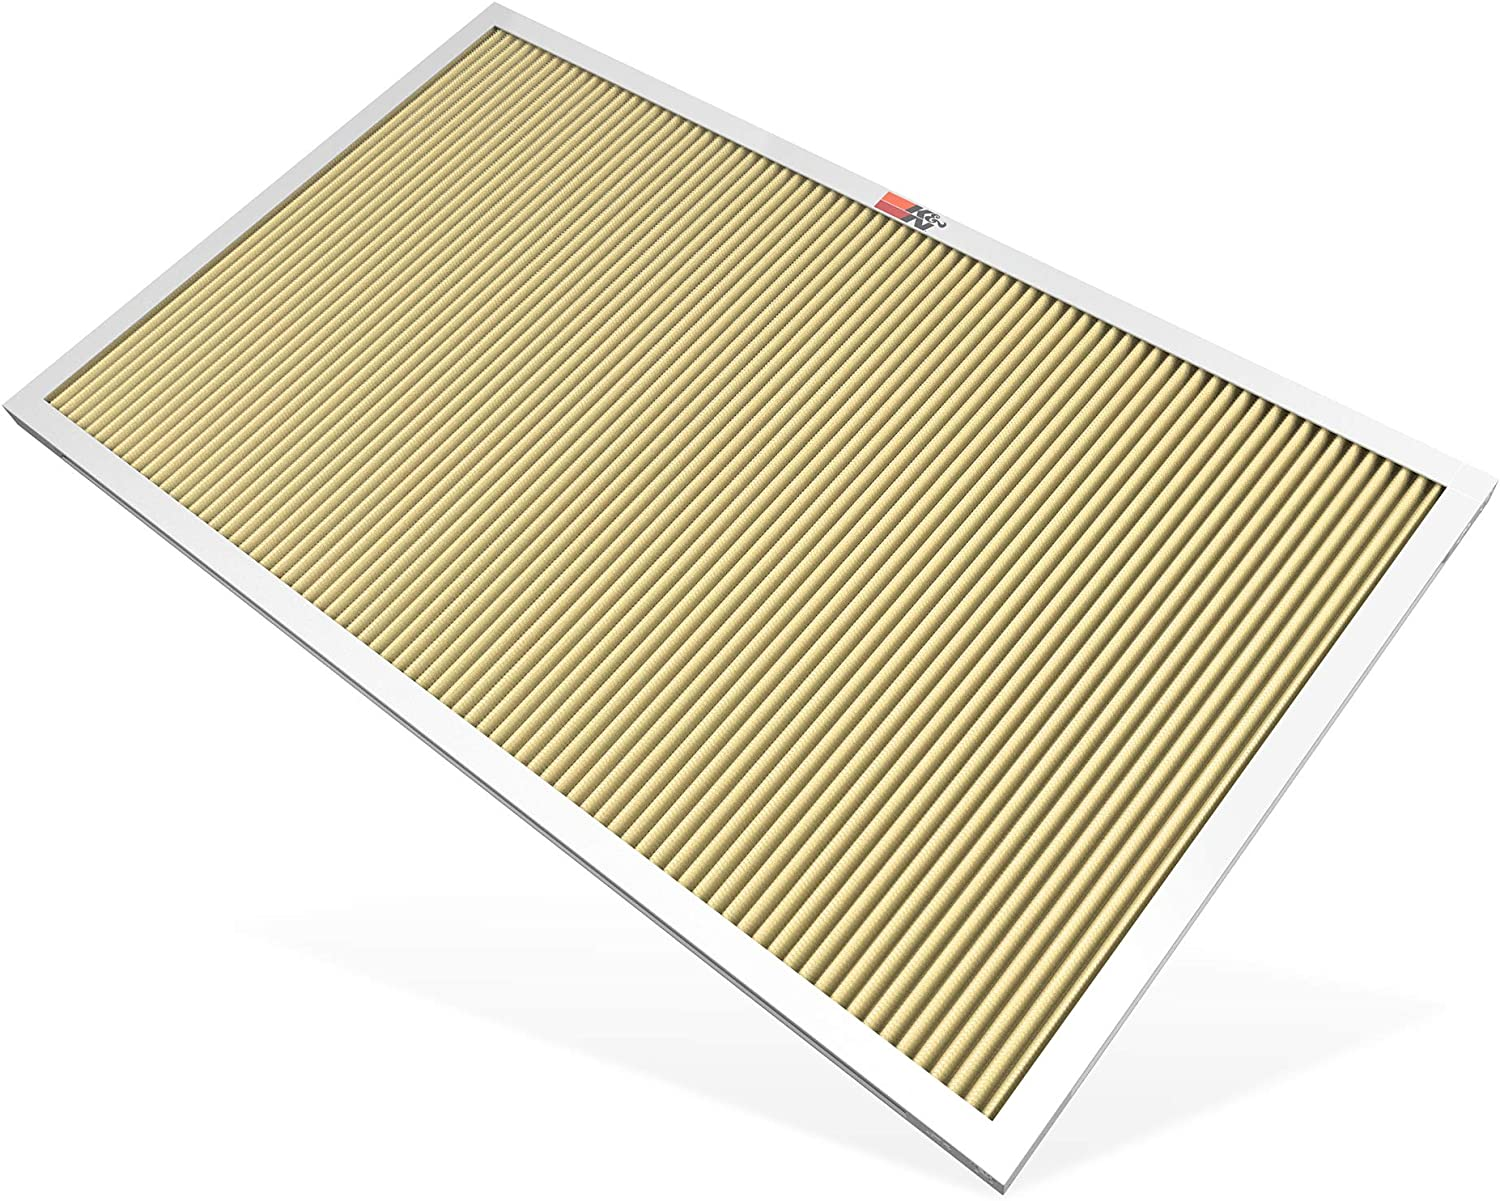 K&N 18x30x1 HVAC Air Filter; Lasts a Lifetime; Washable; Merv 11; Filters Allergies, Pollen, Smoke, Dust, Pet Dander, Mold, Smog, and More; Breathe Cleanly at Home, HVC-11830